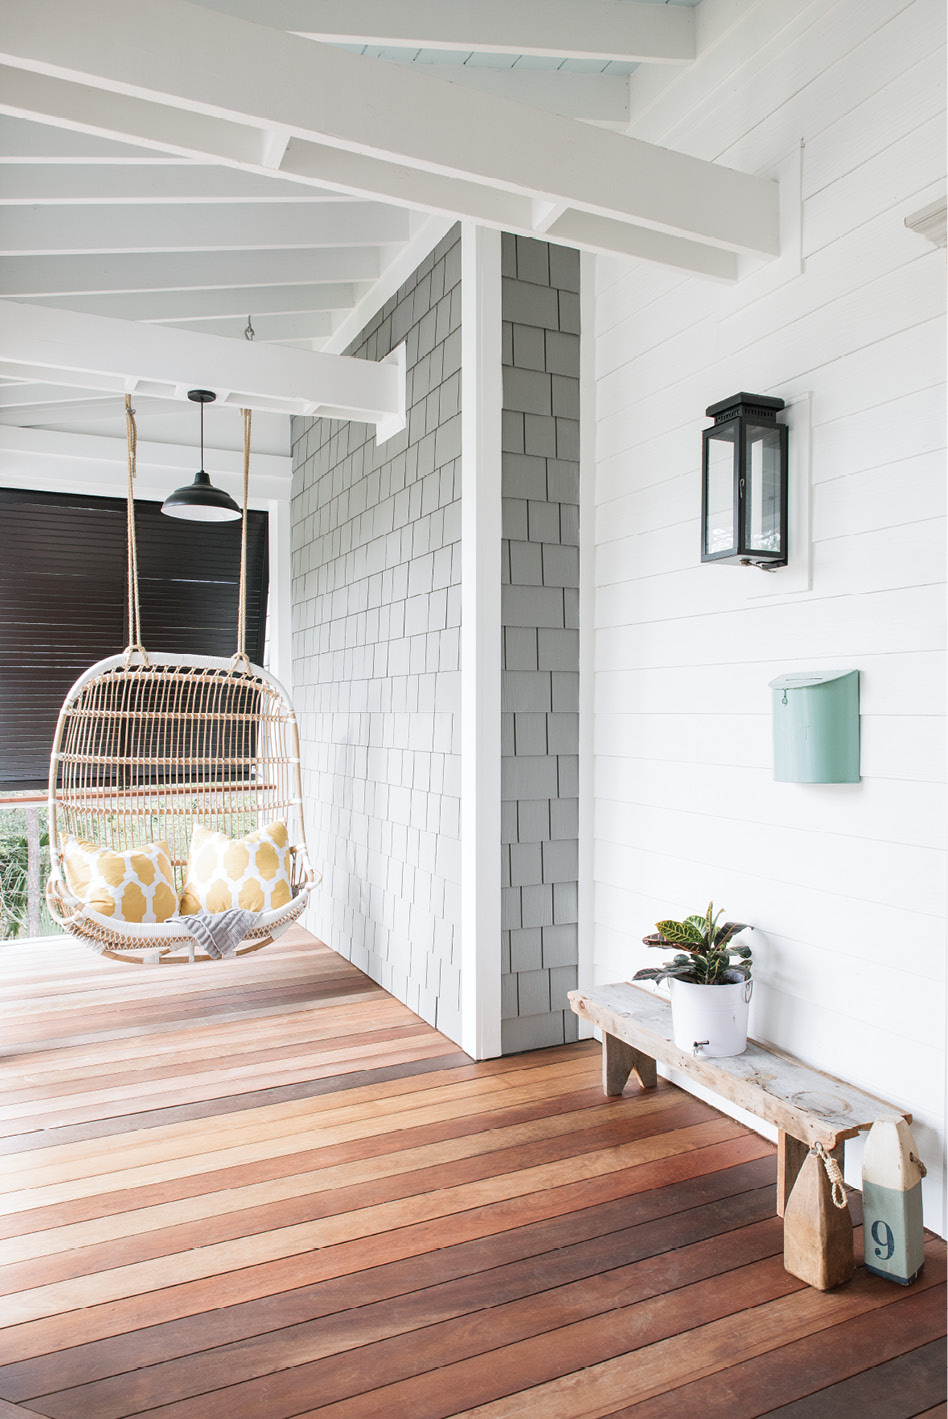 """I love that the design is modern yet has a vintage appeal about it,"" says Melissa about the rattan porch"